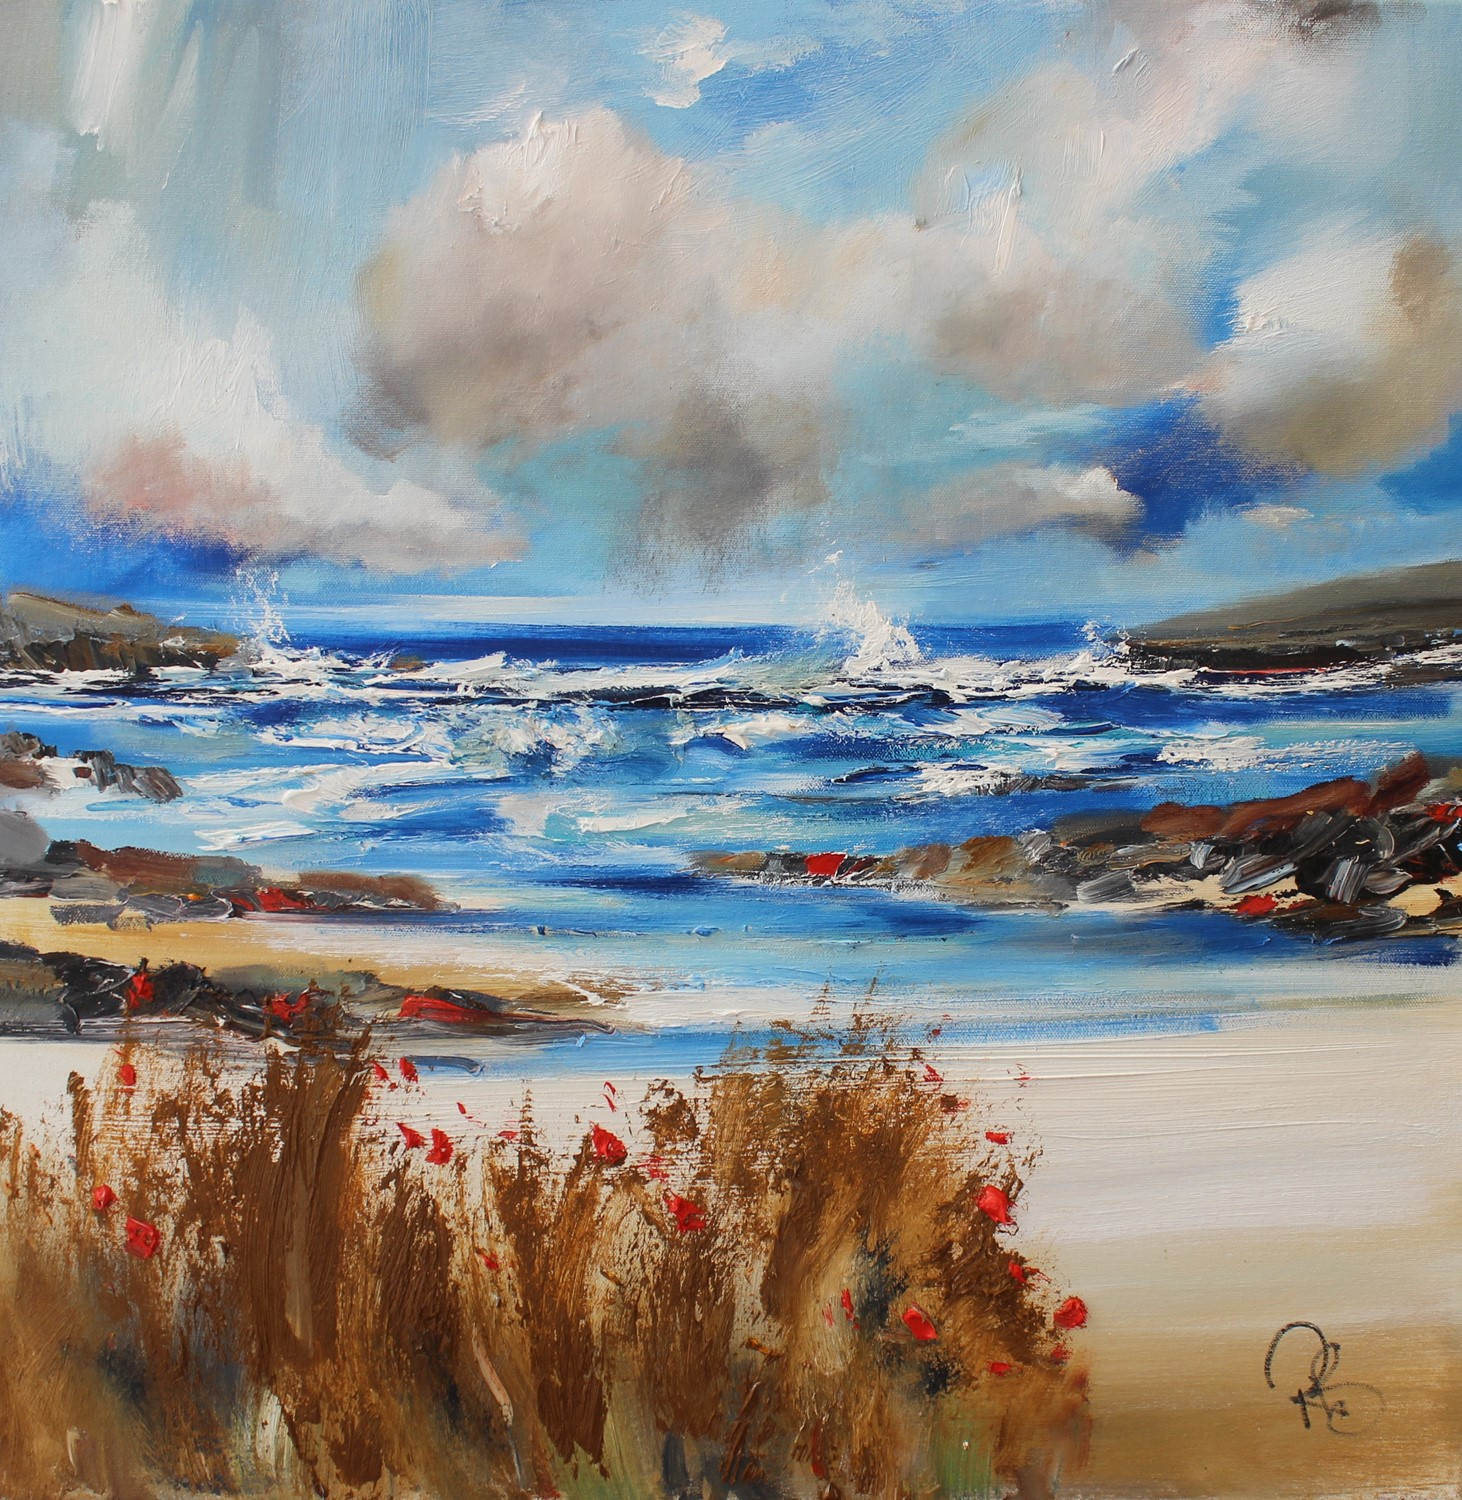 'It's Blustery by the Sea' by artist Rosanne Barr